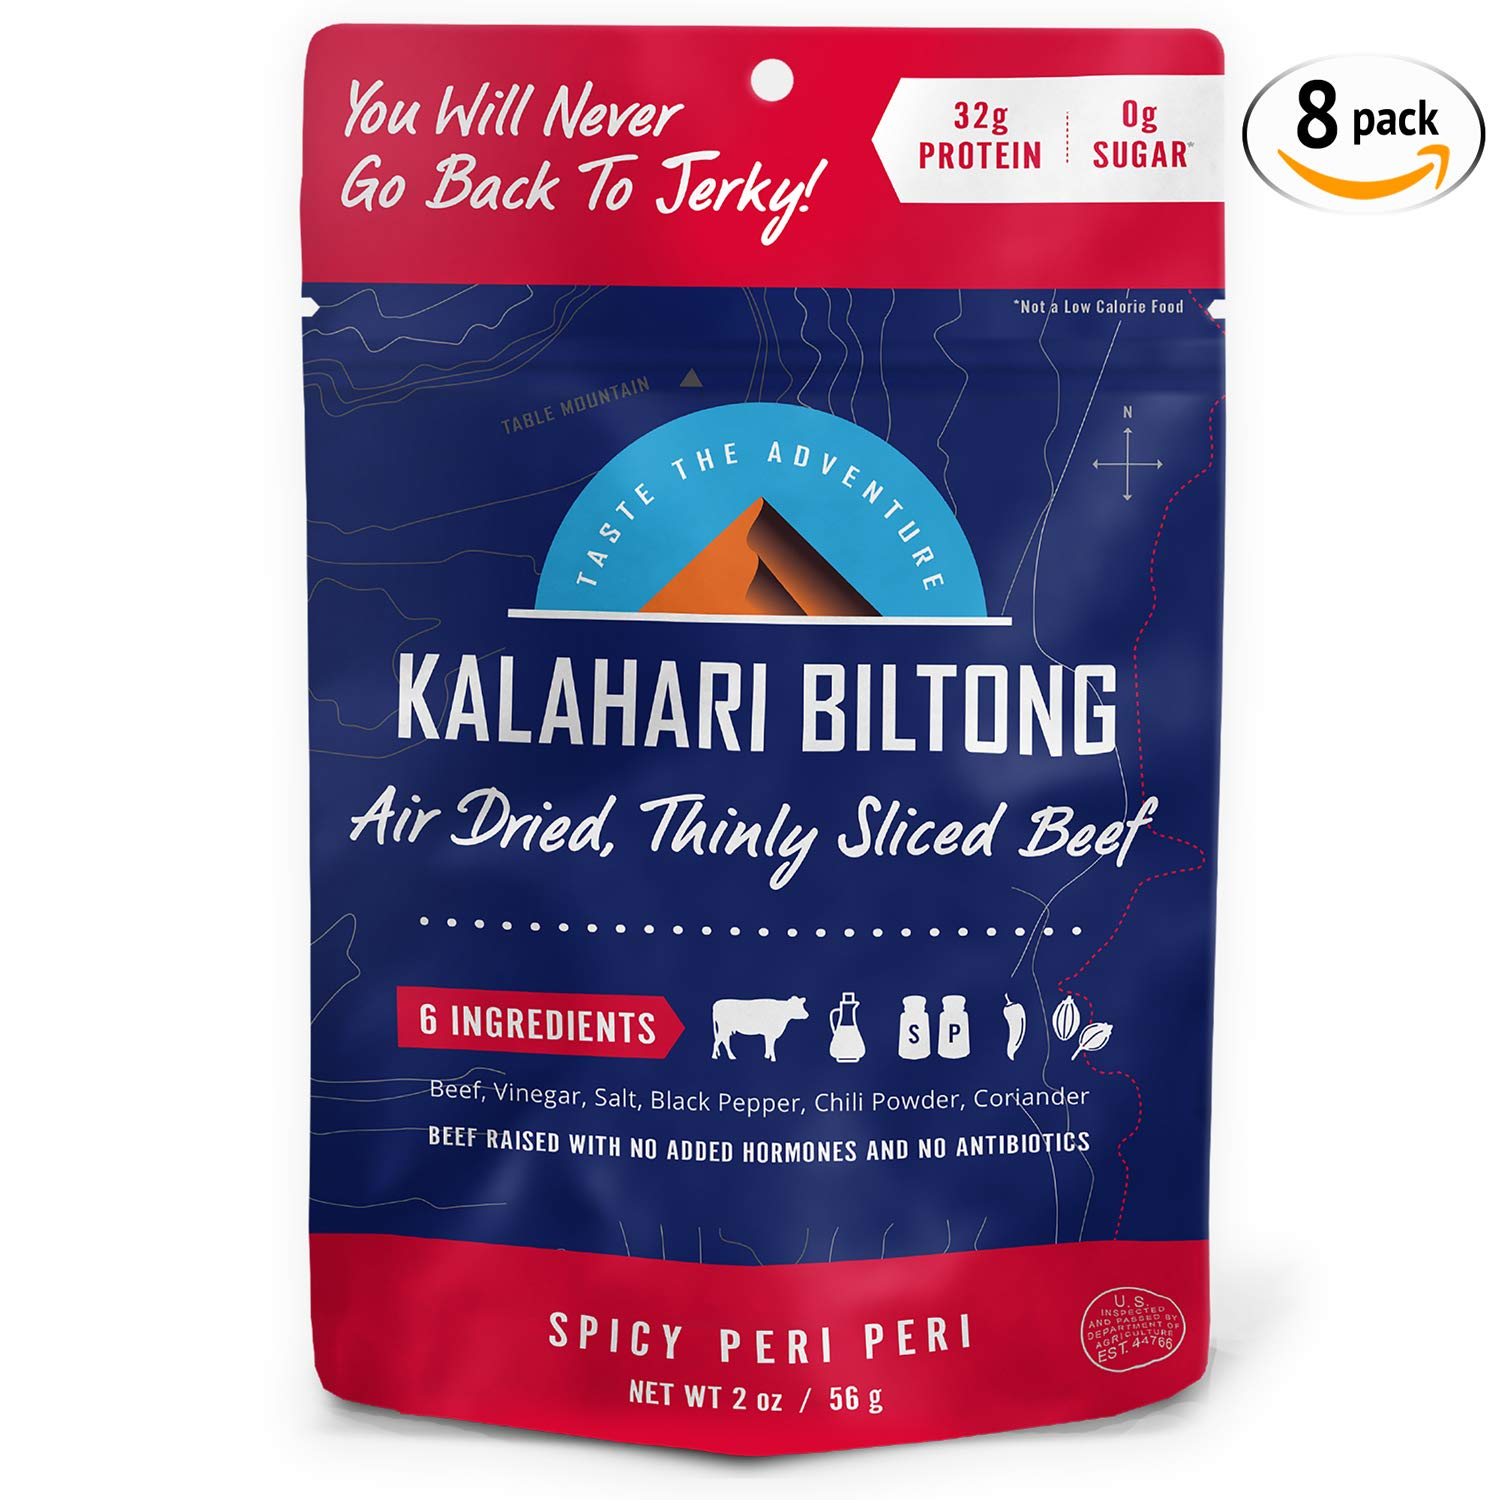 Kalahari Biltong | Air-Dried Thinly Sliced Beef | Spicy Peri Peri | 2oz (Pack of 8) | Zero Sugar | Keto & Paleo | Gluten Free | Better than Jerky